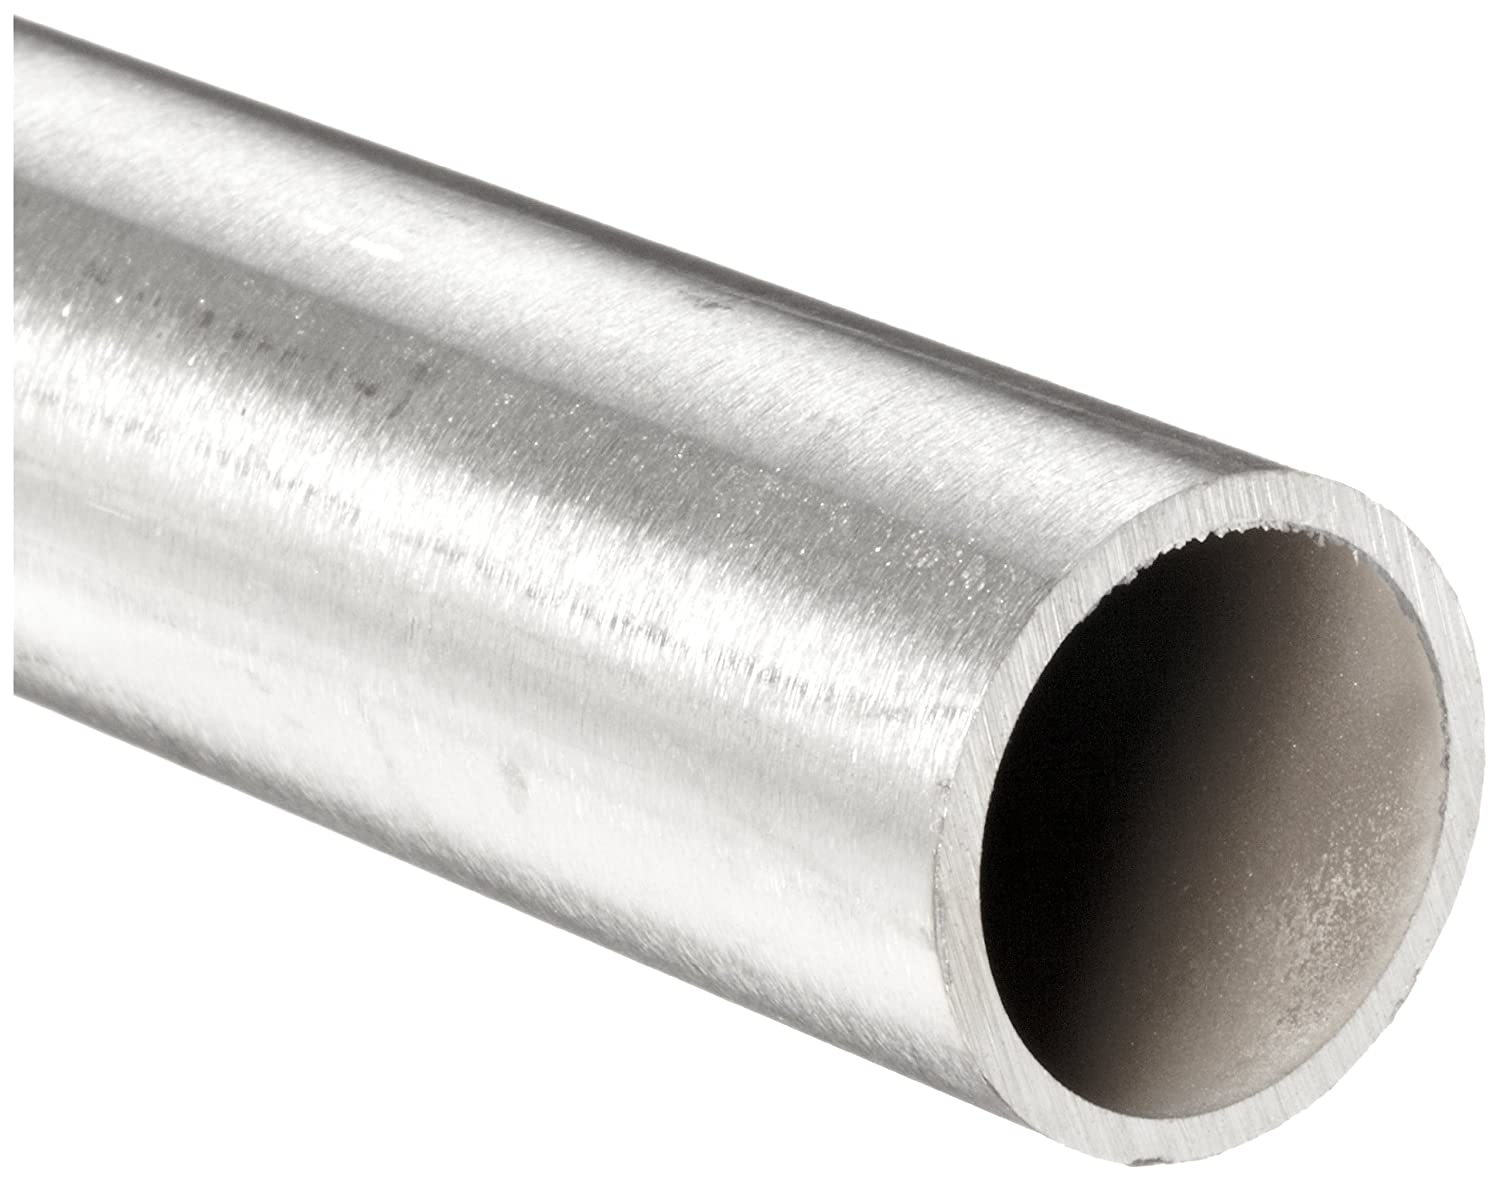 "304 Stainless Steel Round Tube 1-1//2/"" OD x 0.083/"" Wall x 36/"" long Seamless"